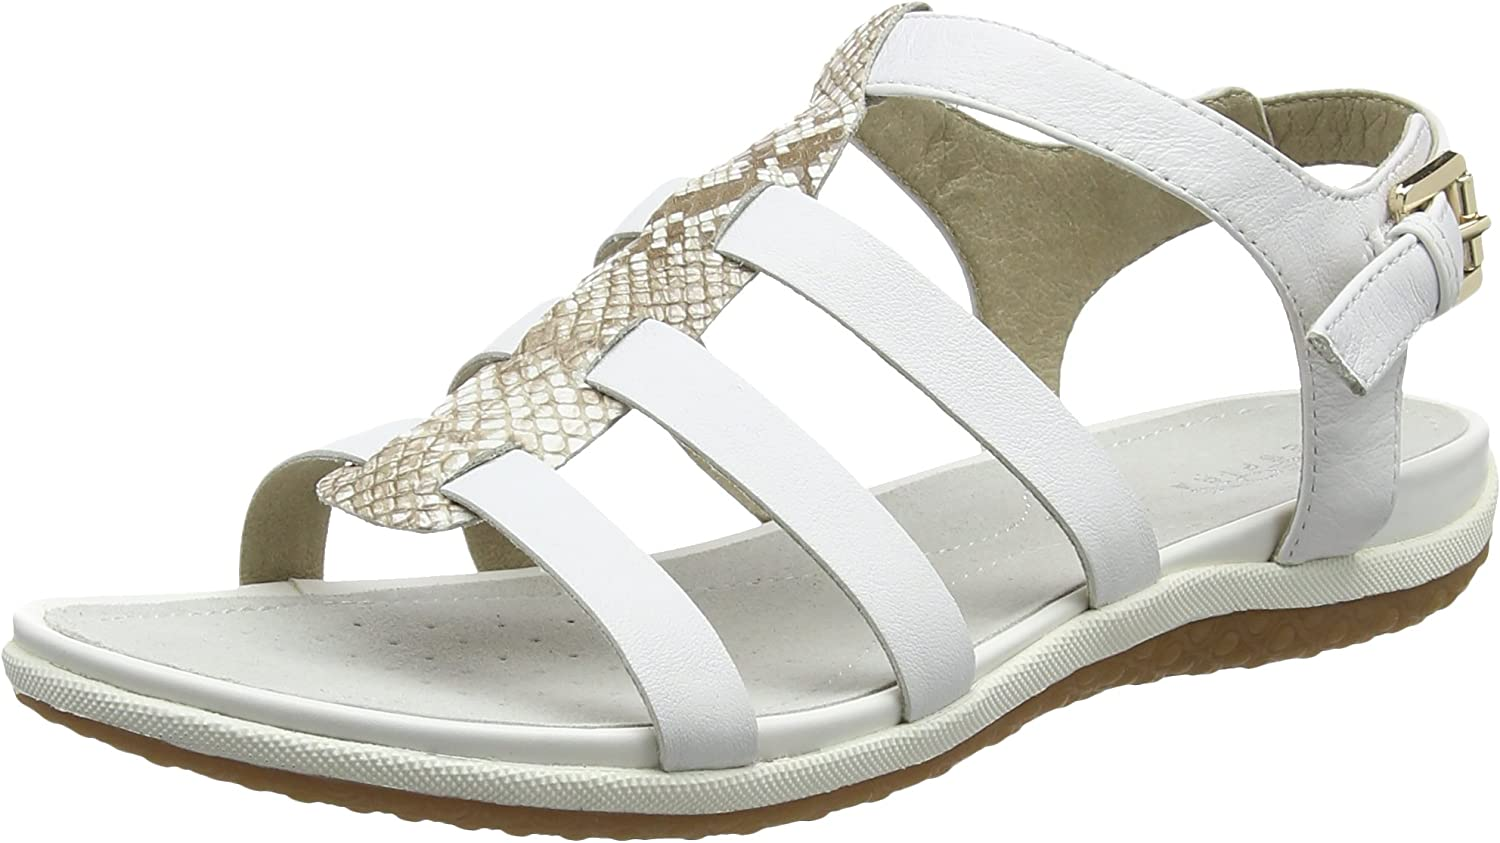 Geox Womens D Sandal Vega Fashion Sandals